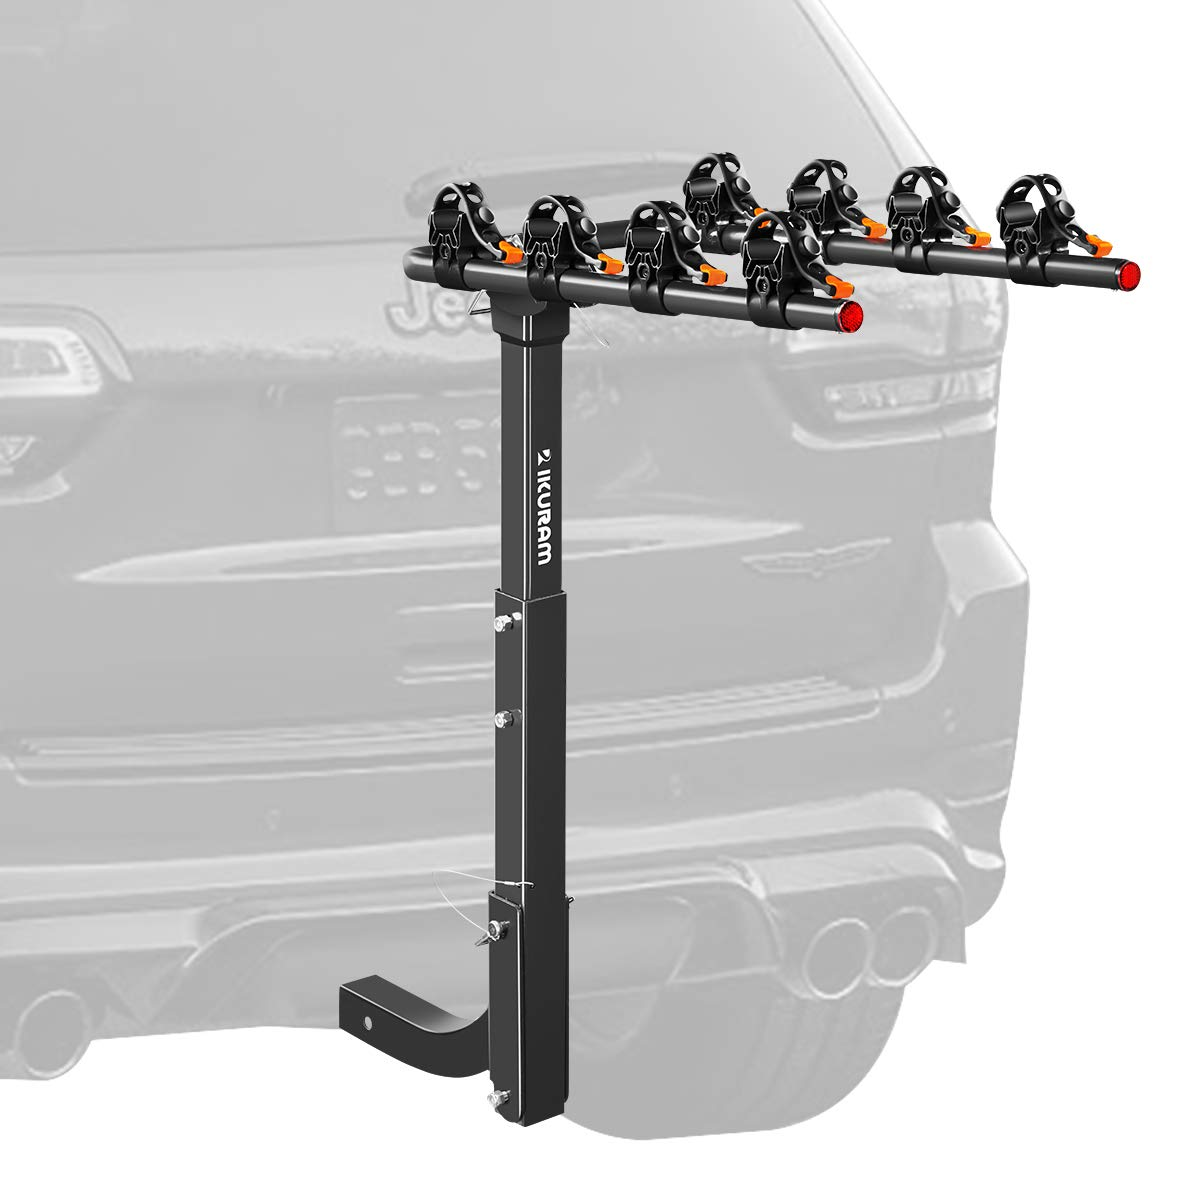 """IKURAM 2/3/4 Bike Rack Bicycle Carrier Racks Hitch Mount Double Foldable Rack for Cars, Trucks, SUV's and minivans with a 2"""" Hitch Receiver Best time to Buy"""